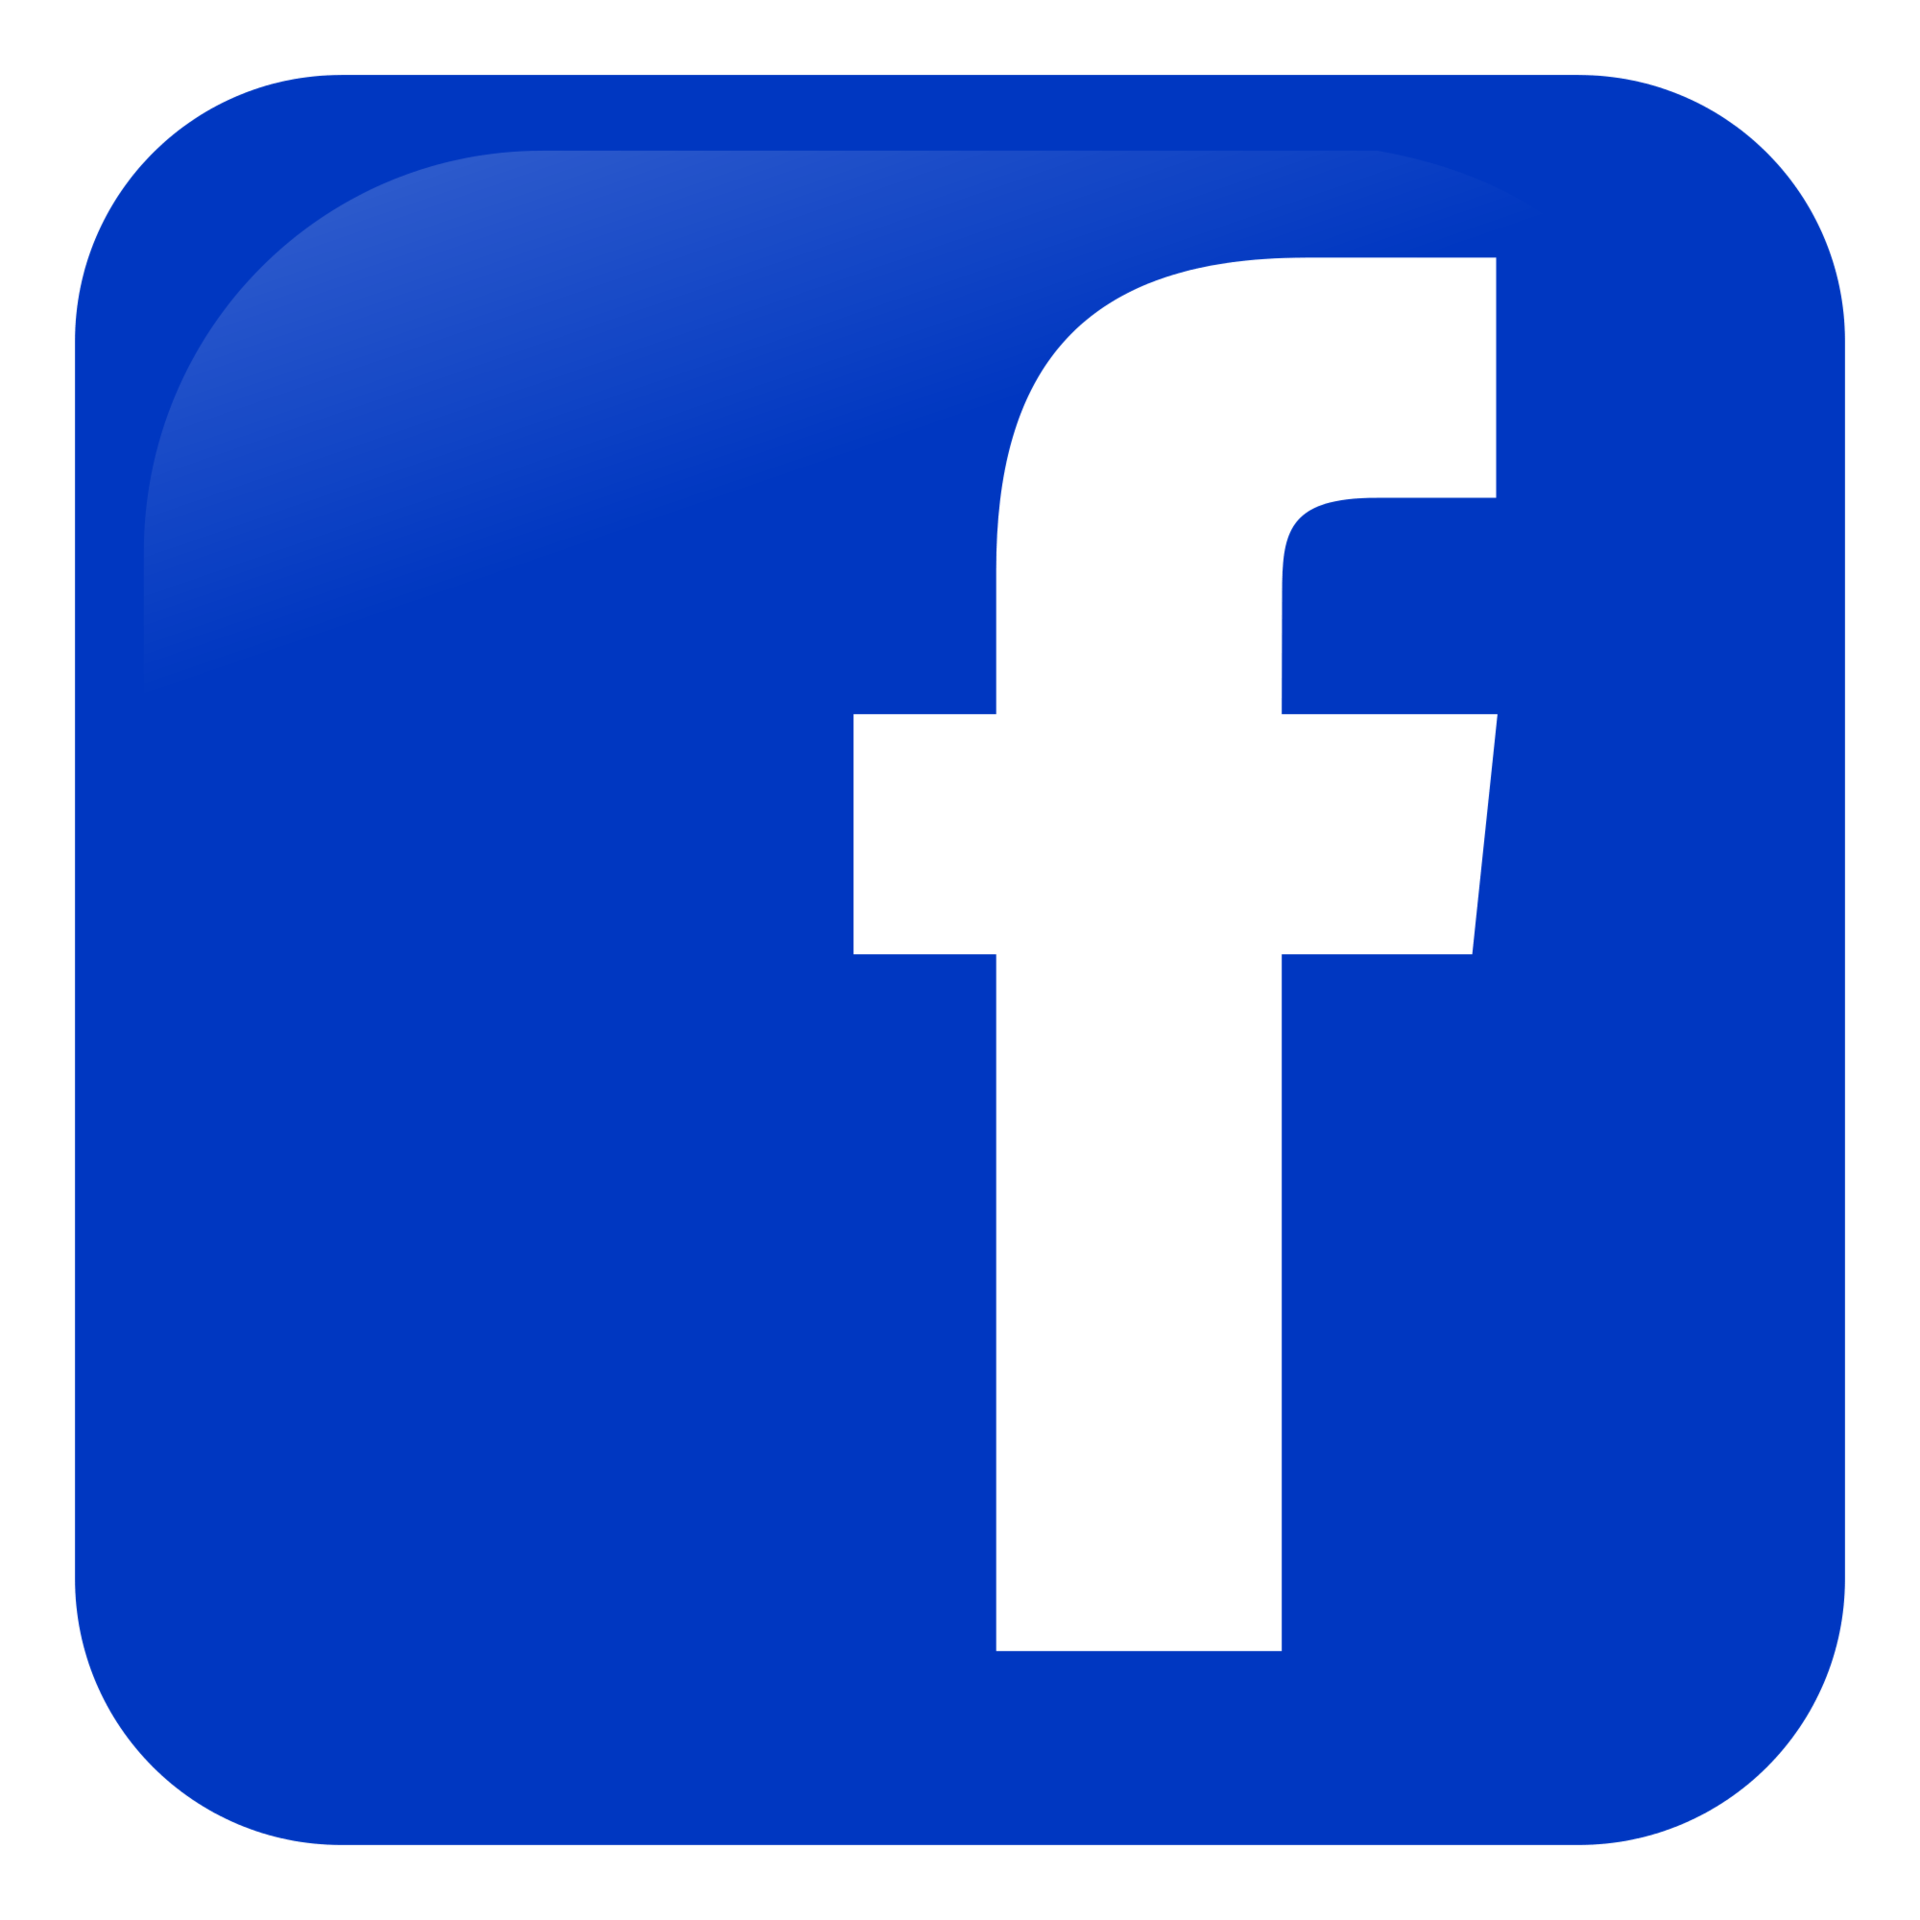 Facebook_icon.svg